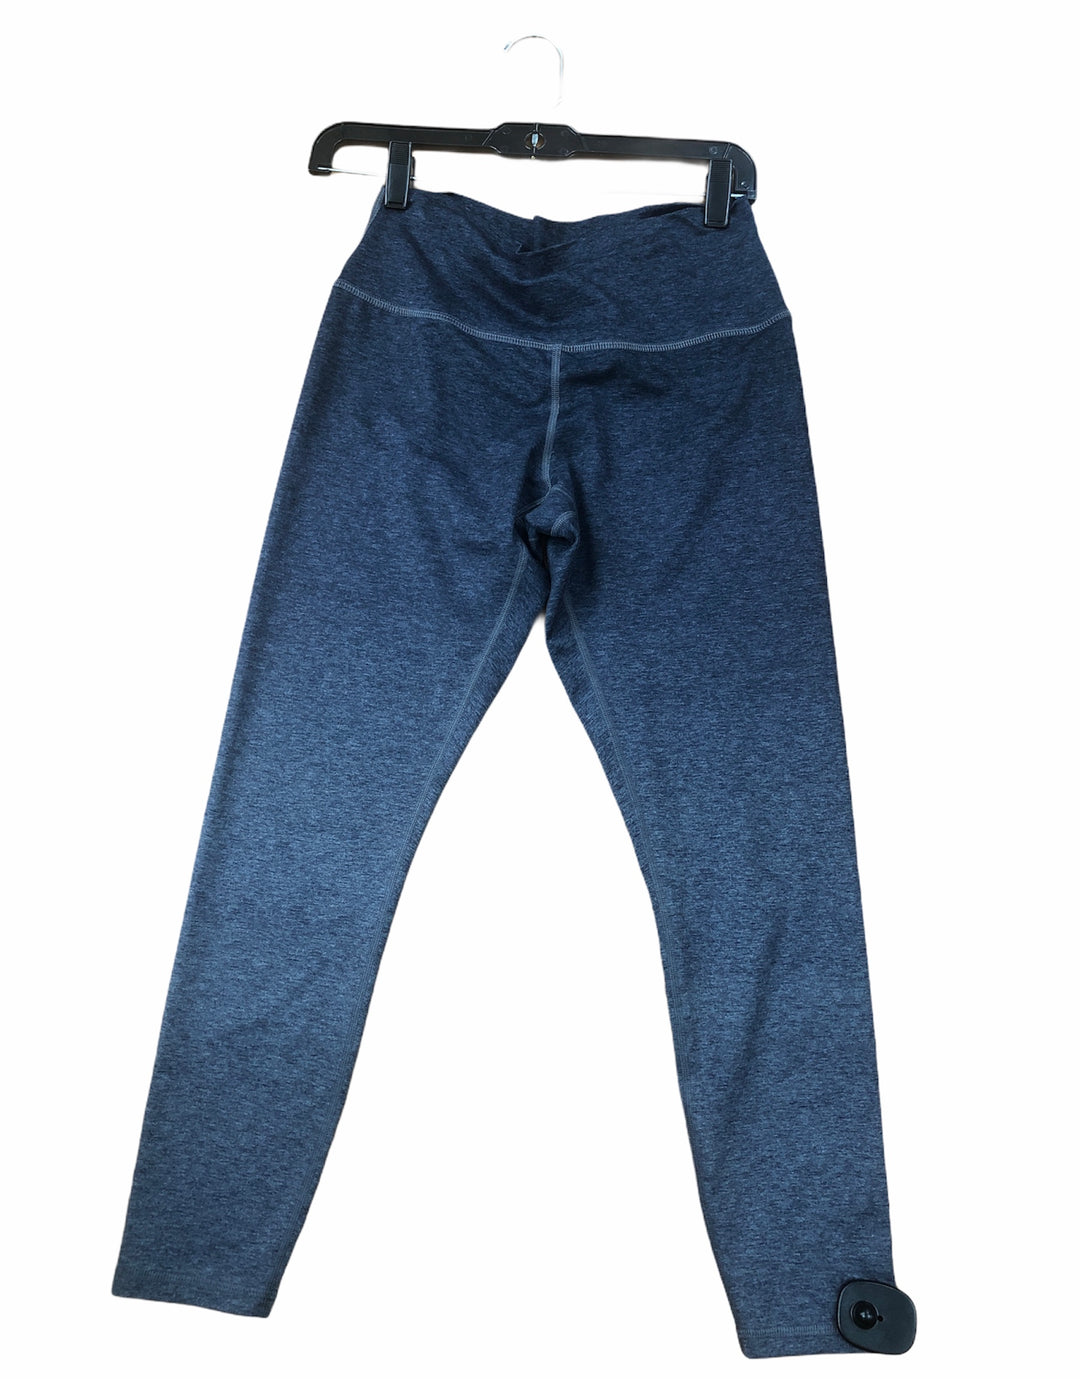 Primary Photo - brand:    clothes mentor , style: athletic pants , color: purple , size: 8 , sku: 267-26791-711